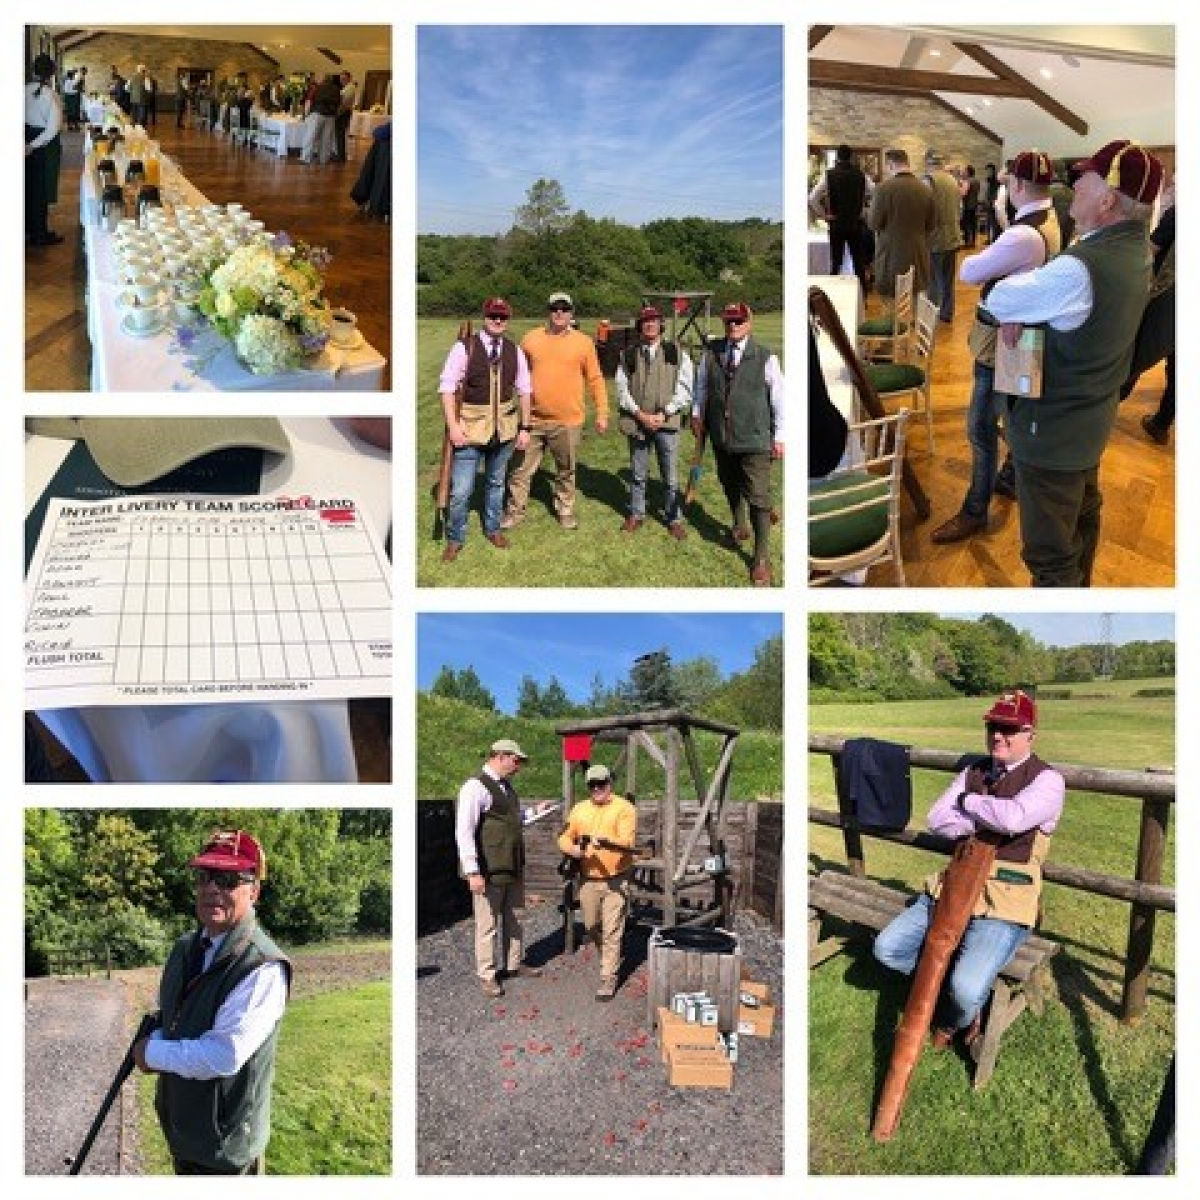 The 25th Anniversary Annual Inter-Livery Clay Pigeon Shooting Competition